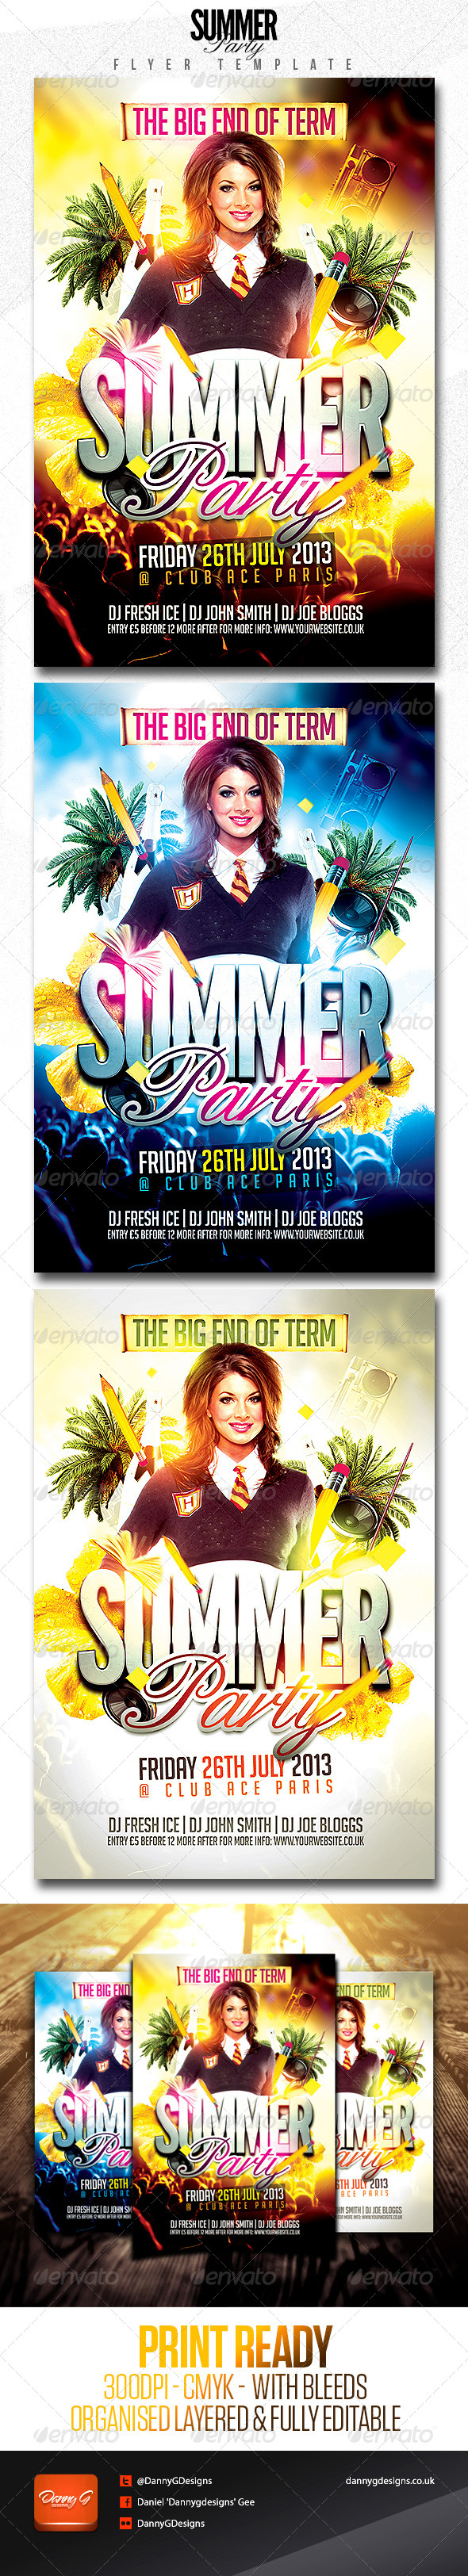 End of Term Summer Party Flyer Template - Clubs & Parties Events